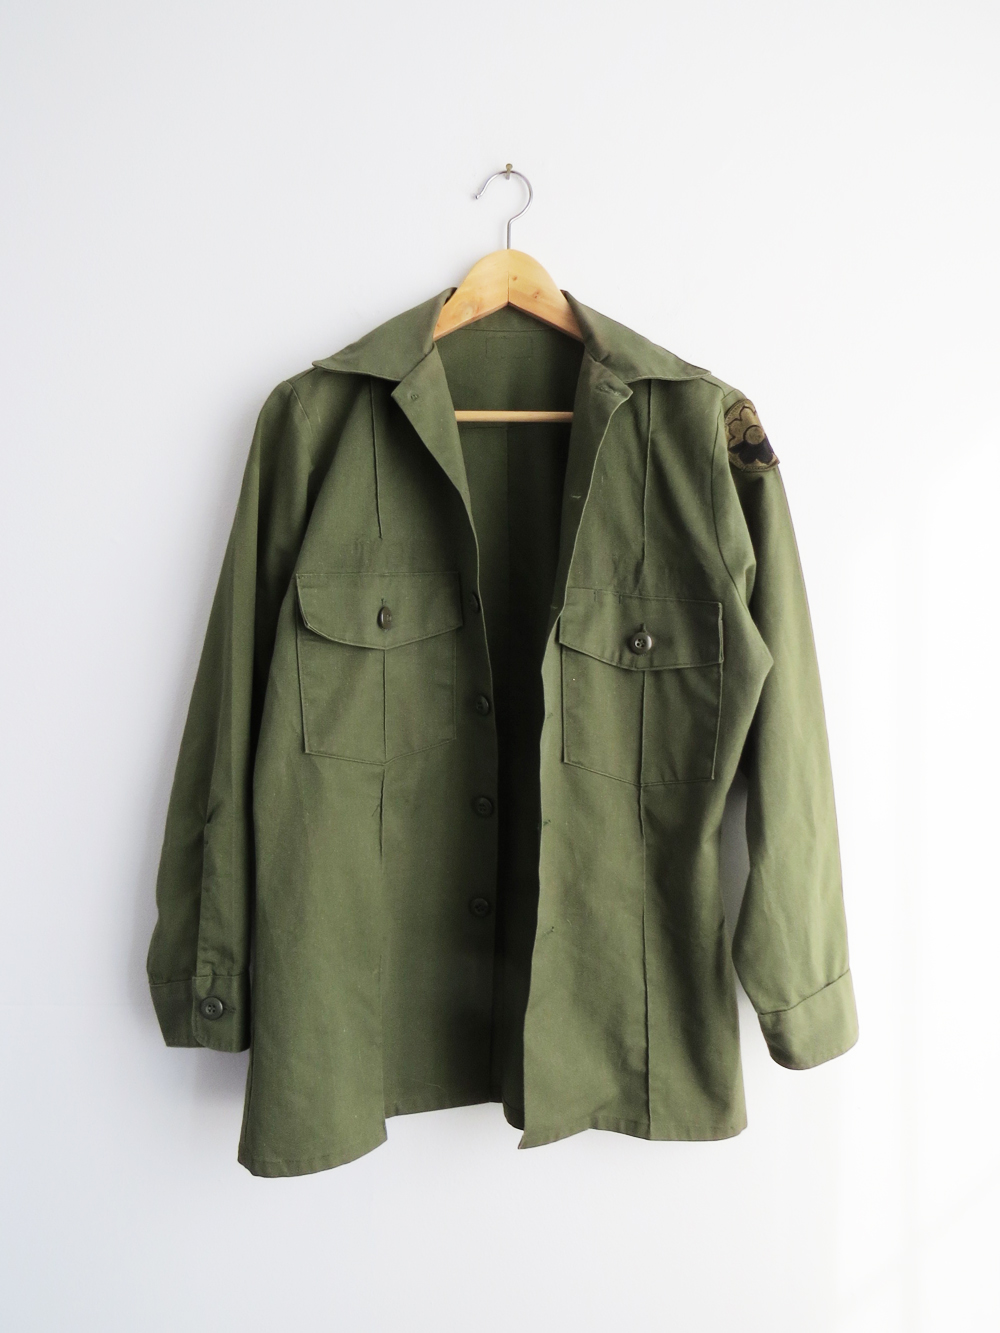 Olive Green Military Shirt